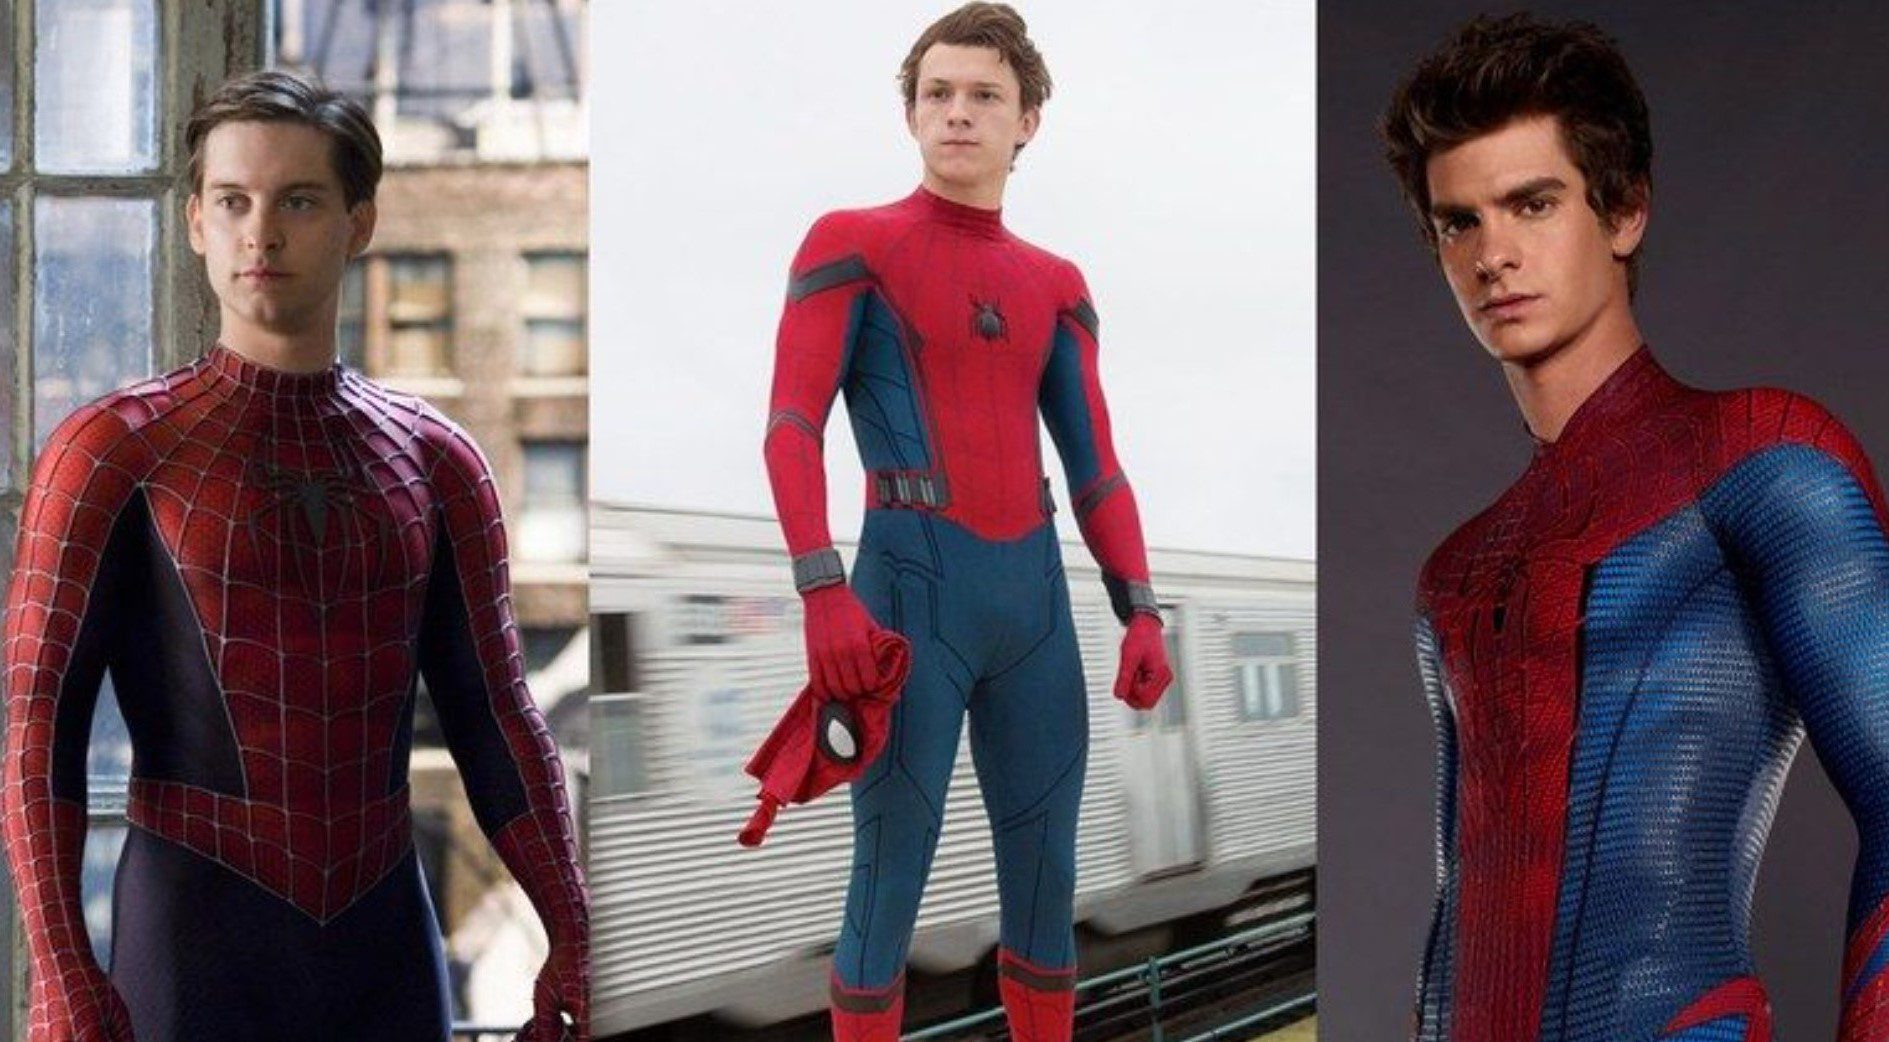 Report: Andrew Garfield set to return for Spider-Man 3; Tobey Maguire in talks to return